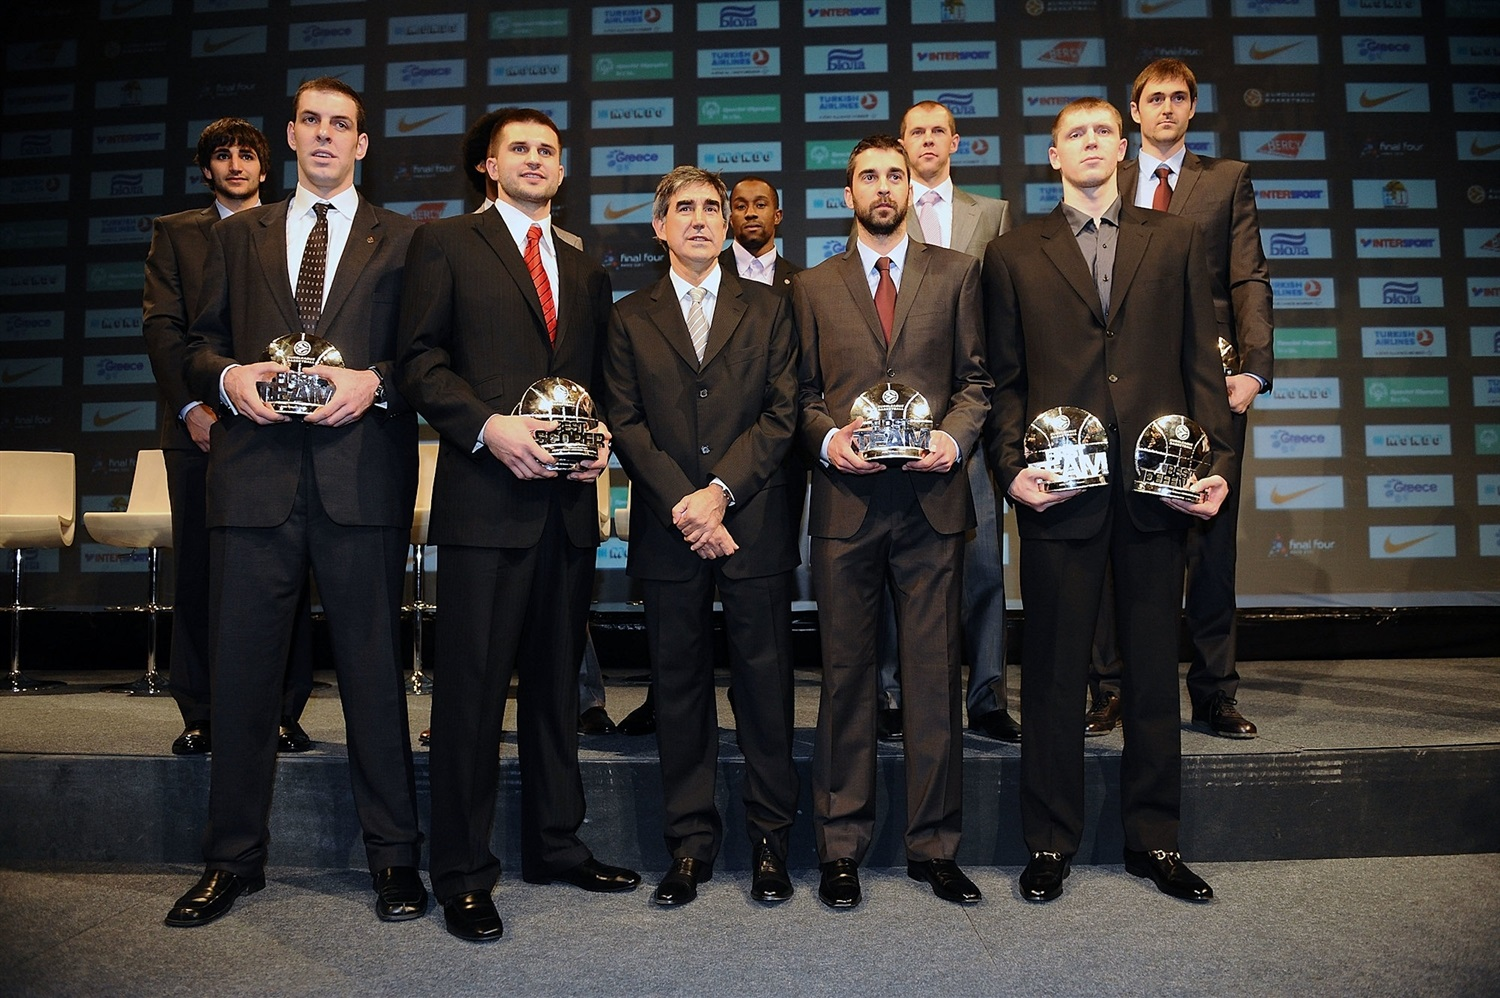 All Euroleague Team 2009-10 - Awards Ceremony at Hotel de Ville - Final Four Paris 2010